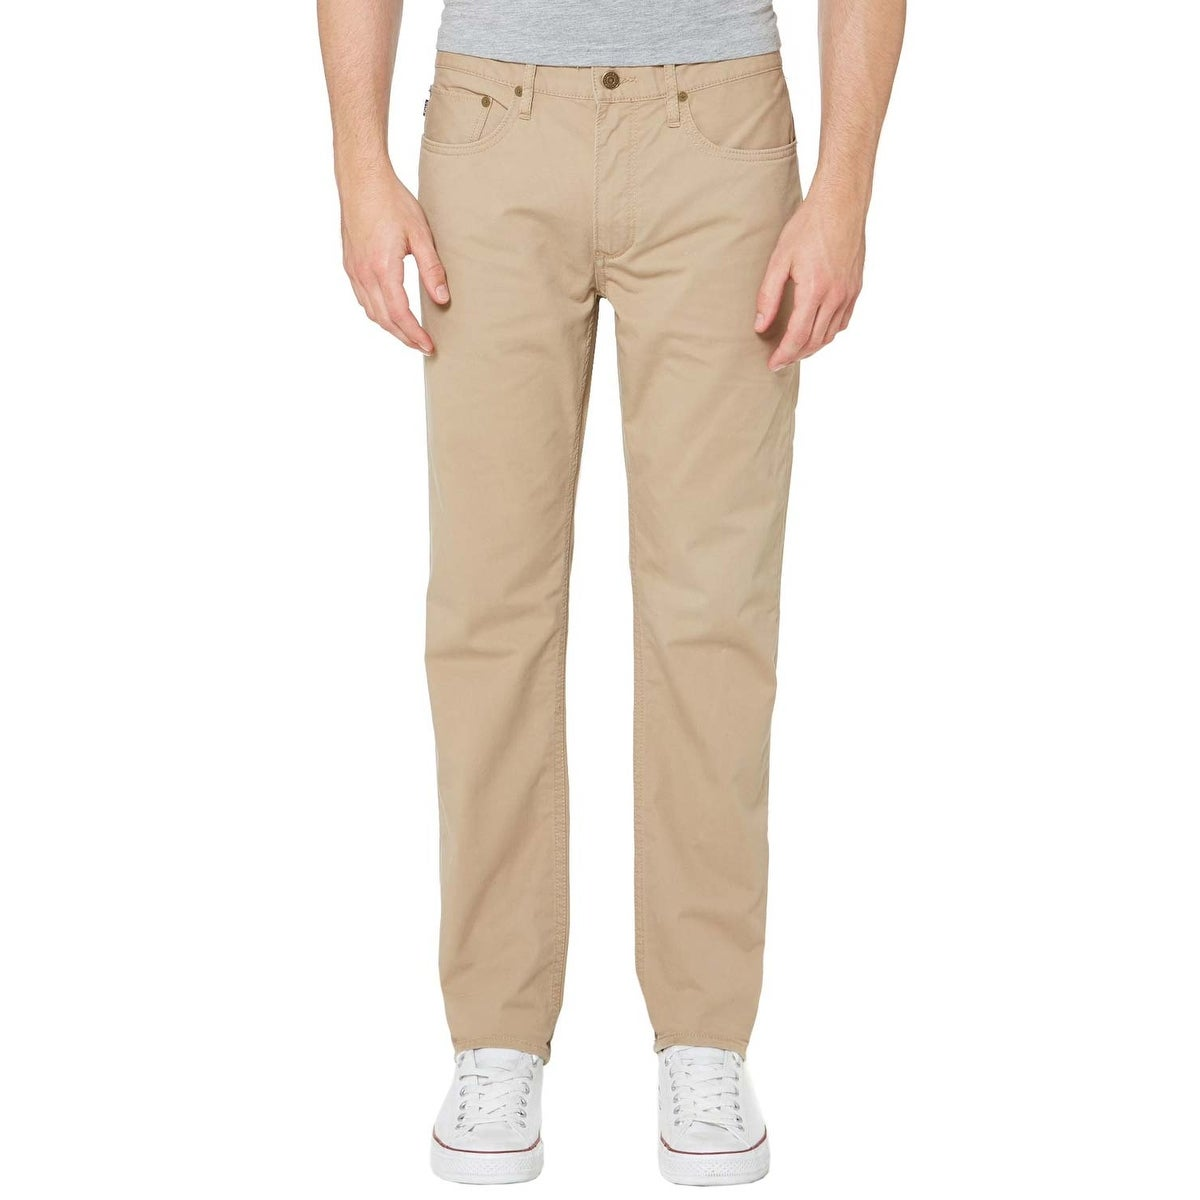 Shop Polo Ralph Lauren Khaki Pants 32x30 Mens Slim Straight Stretch Fit  Flat Front - Free Shipping Today - Overstock.com - 20645772 e183fbce73